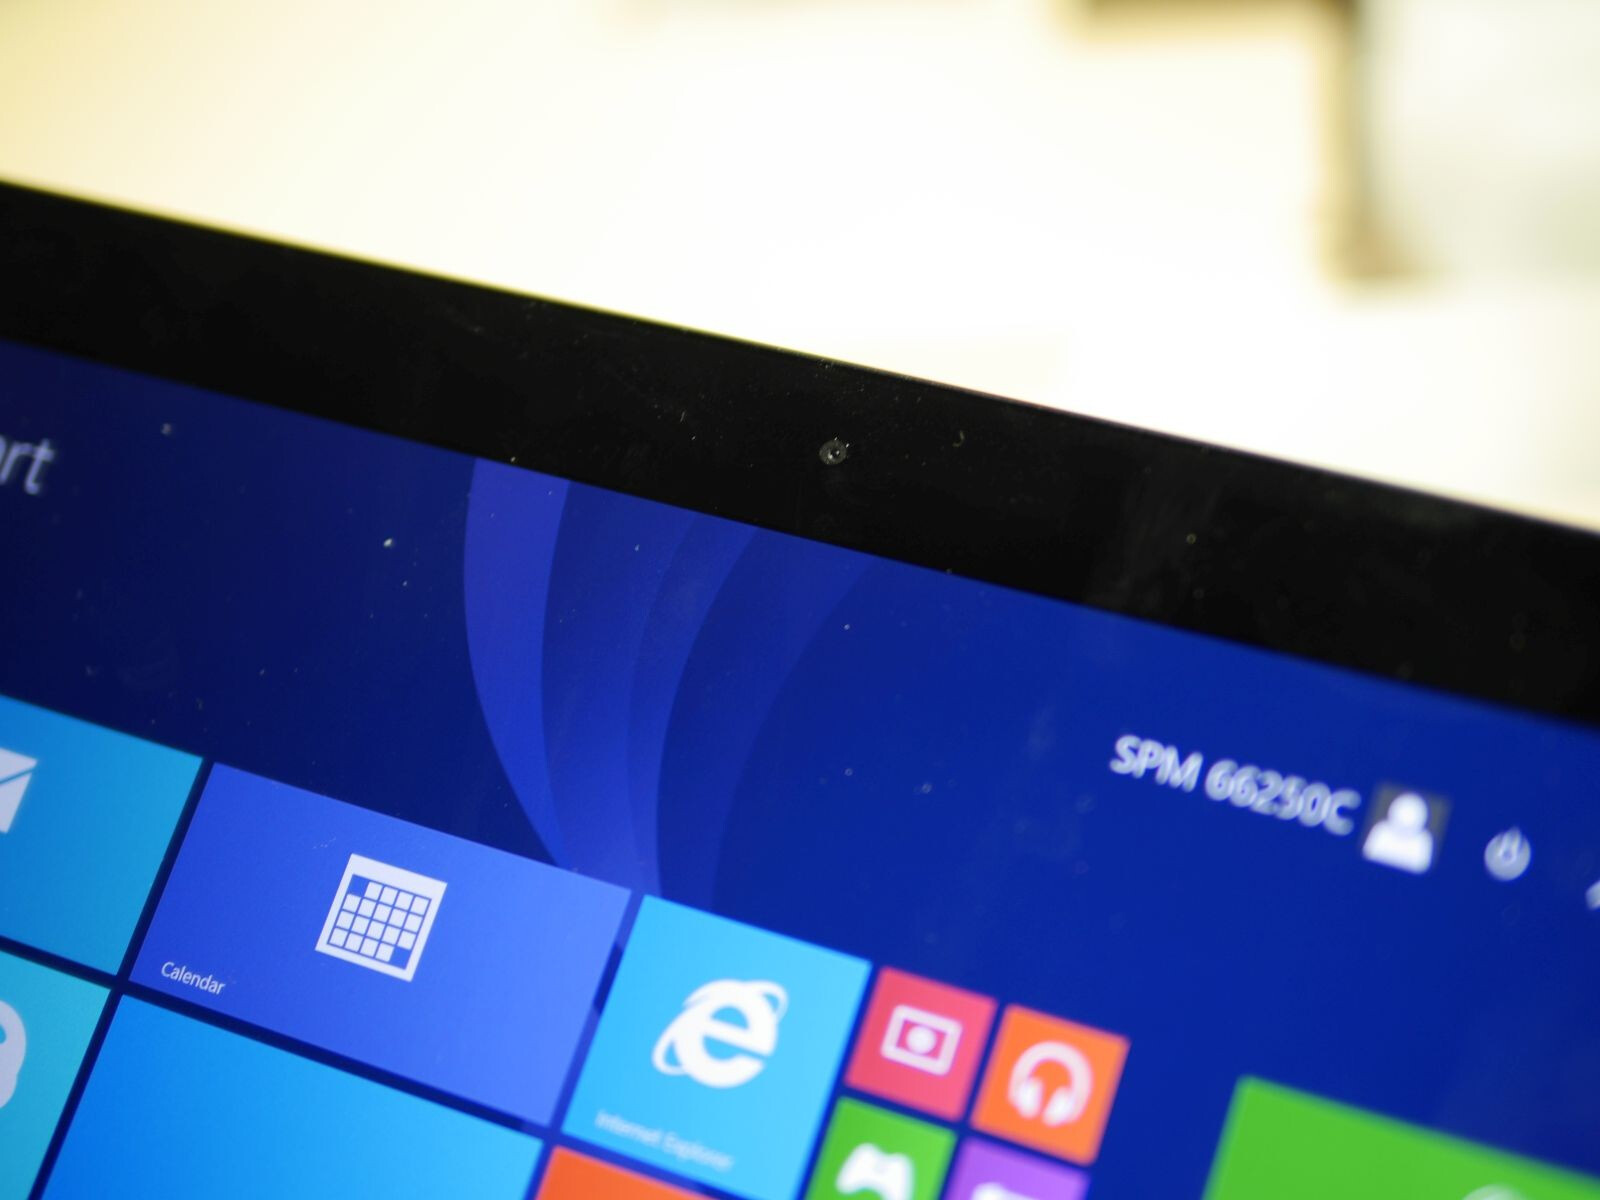 [Hands on] Asus Transformer Book T100 Chi - 60241